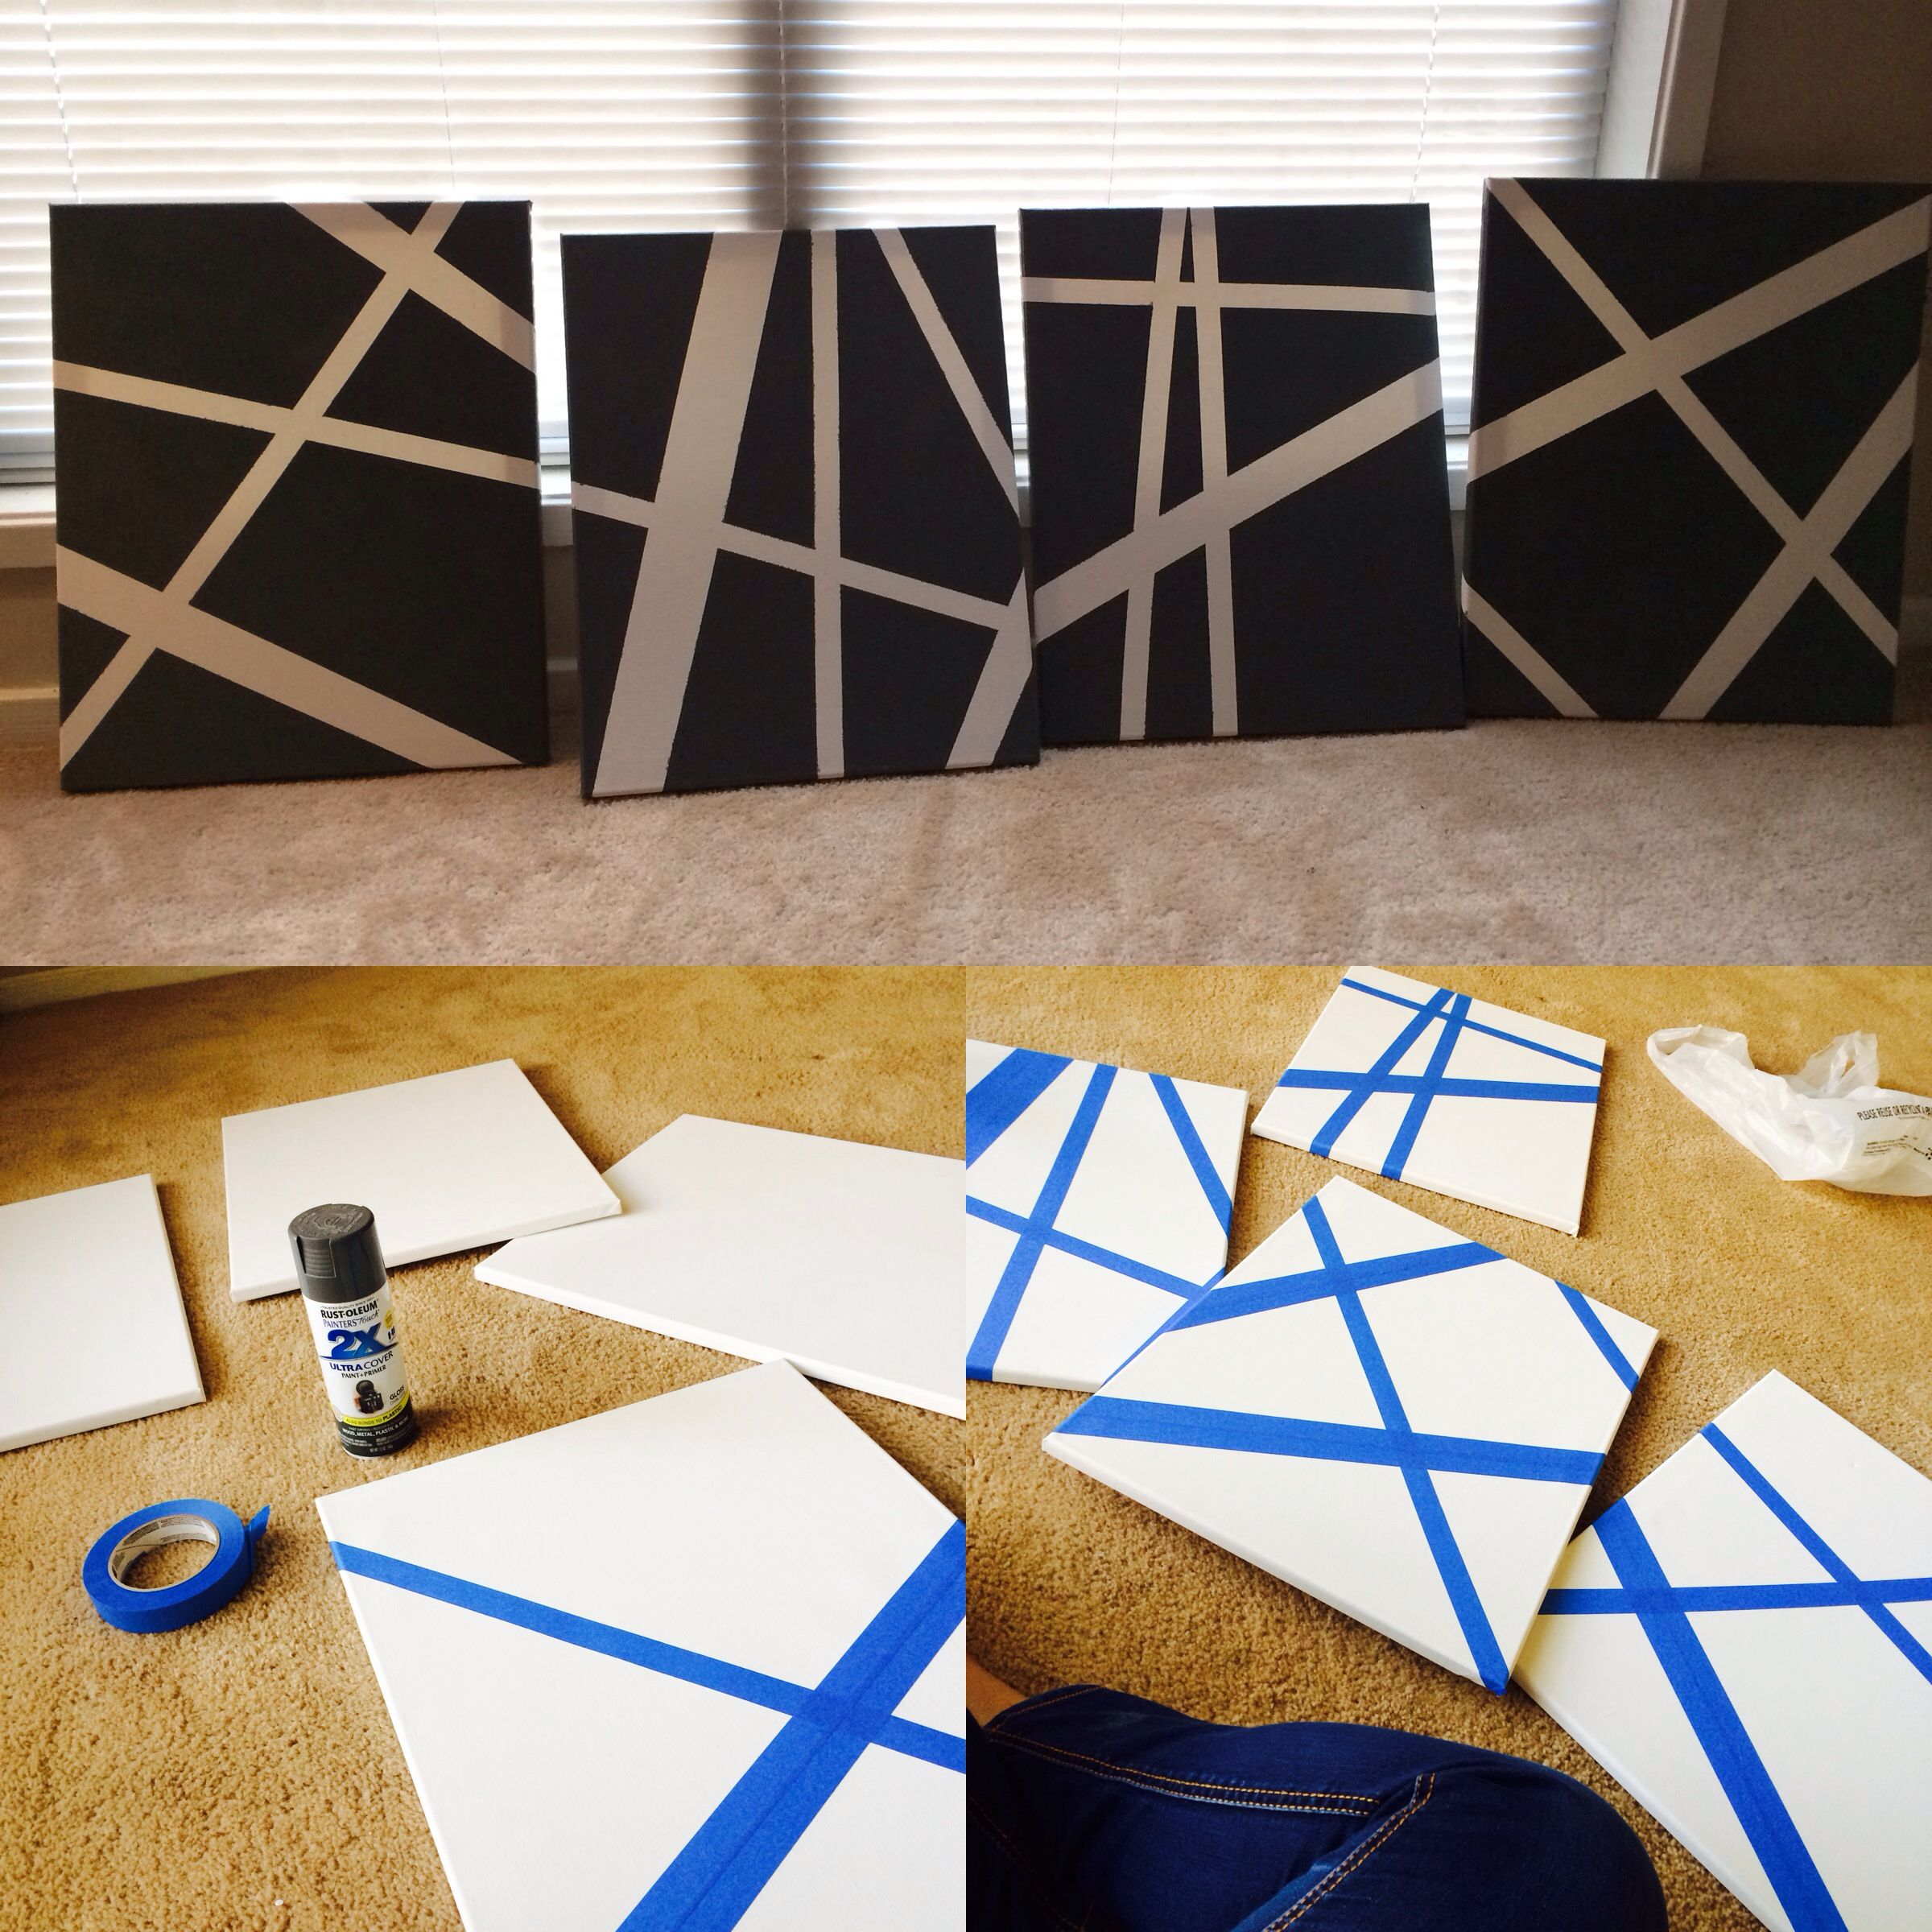 Painting Ideas With Tape: DIY WALL ART! Canvas, Painters Tape And Spray Paint Is All